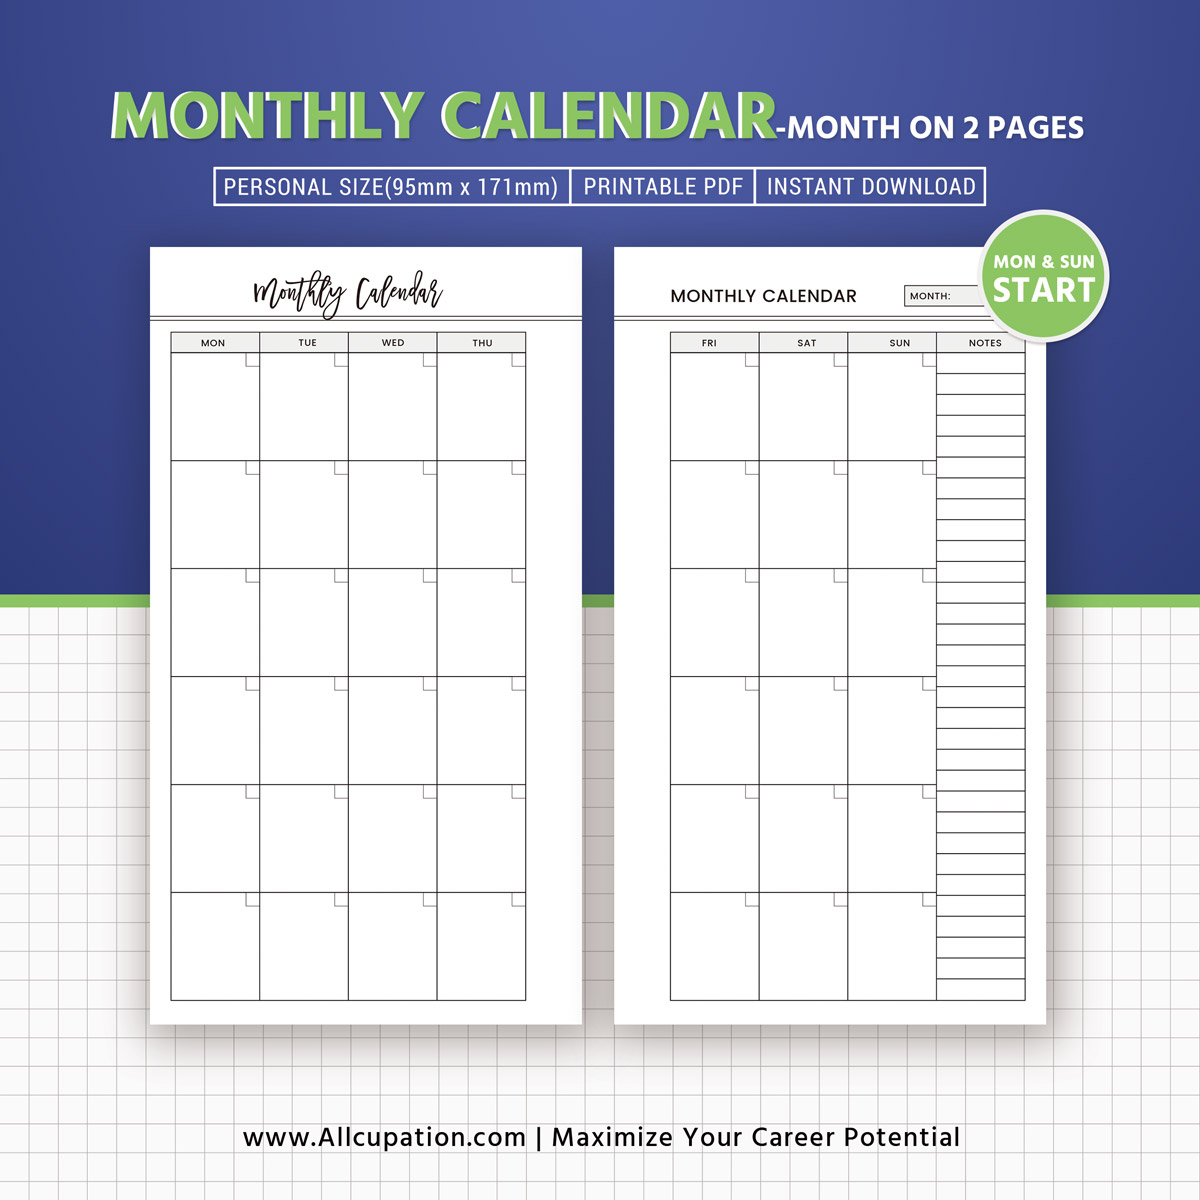 Monthly Calendar Month On 2 Pages Printable